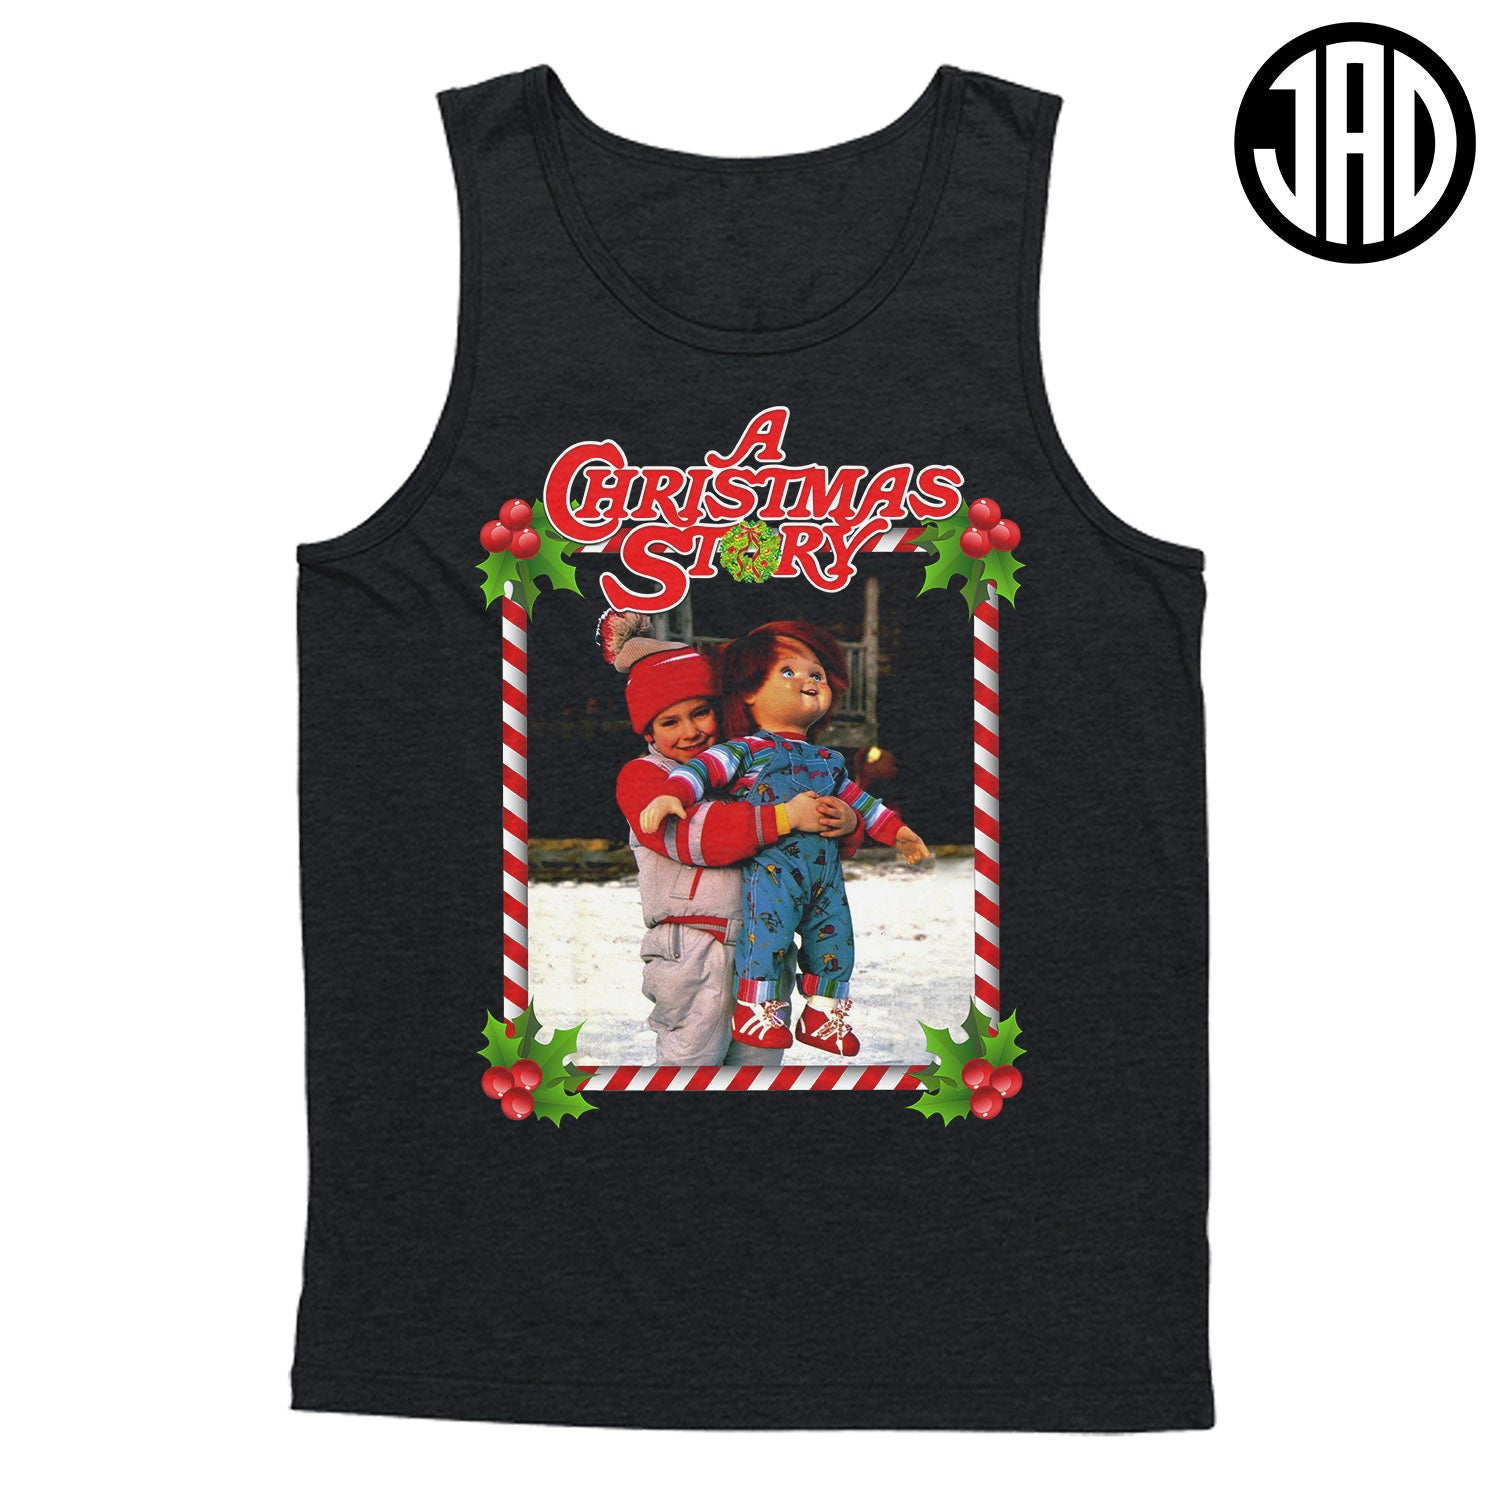 A Christmas Story - Men's (Unisex) Tank